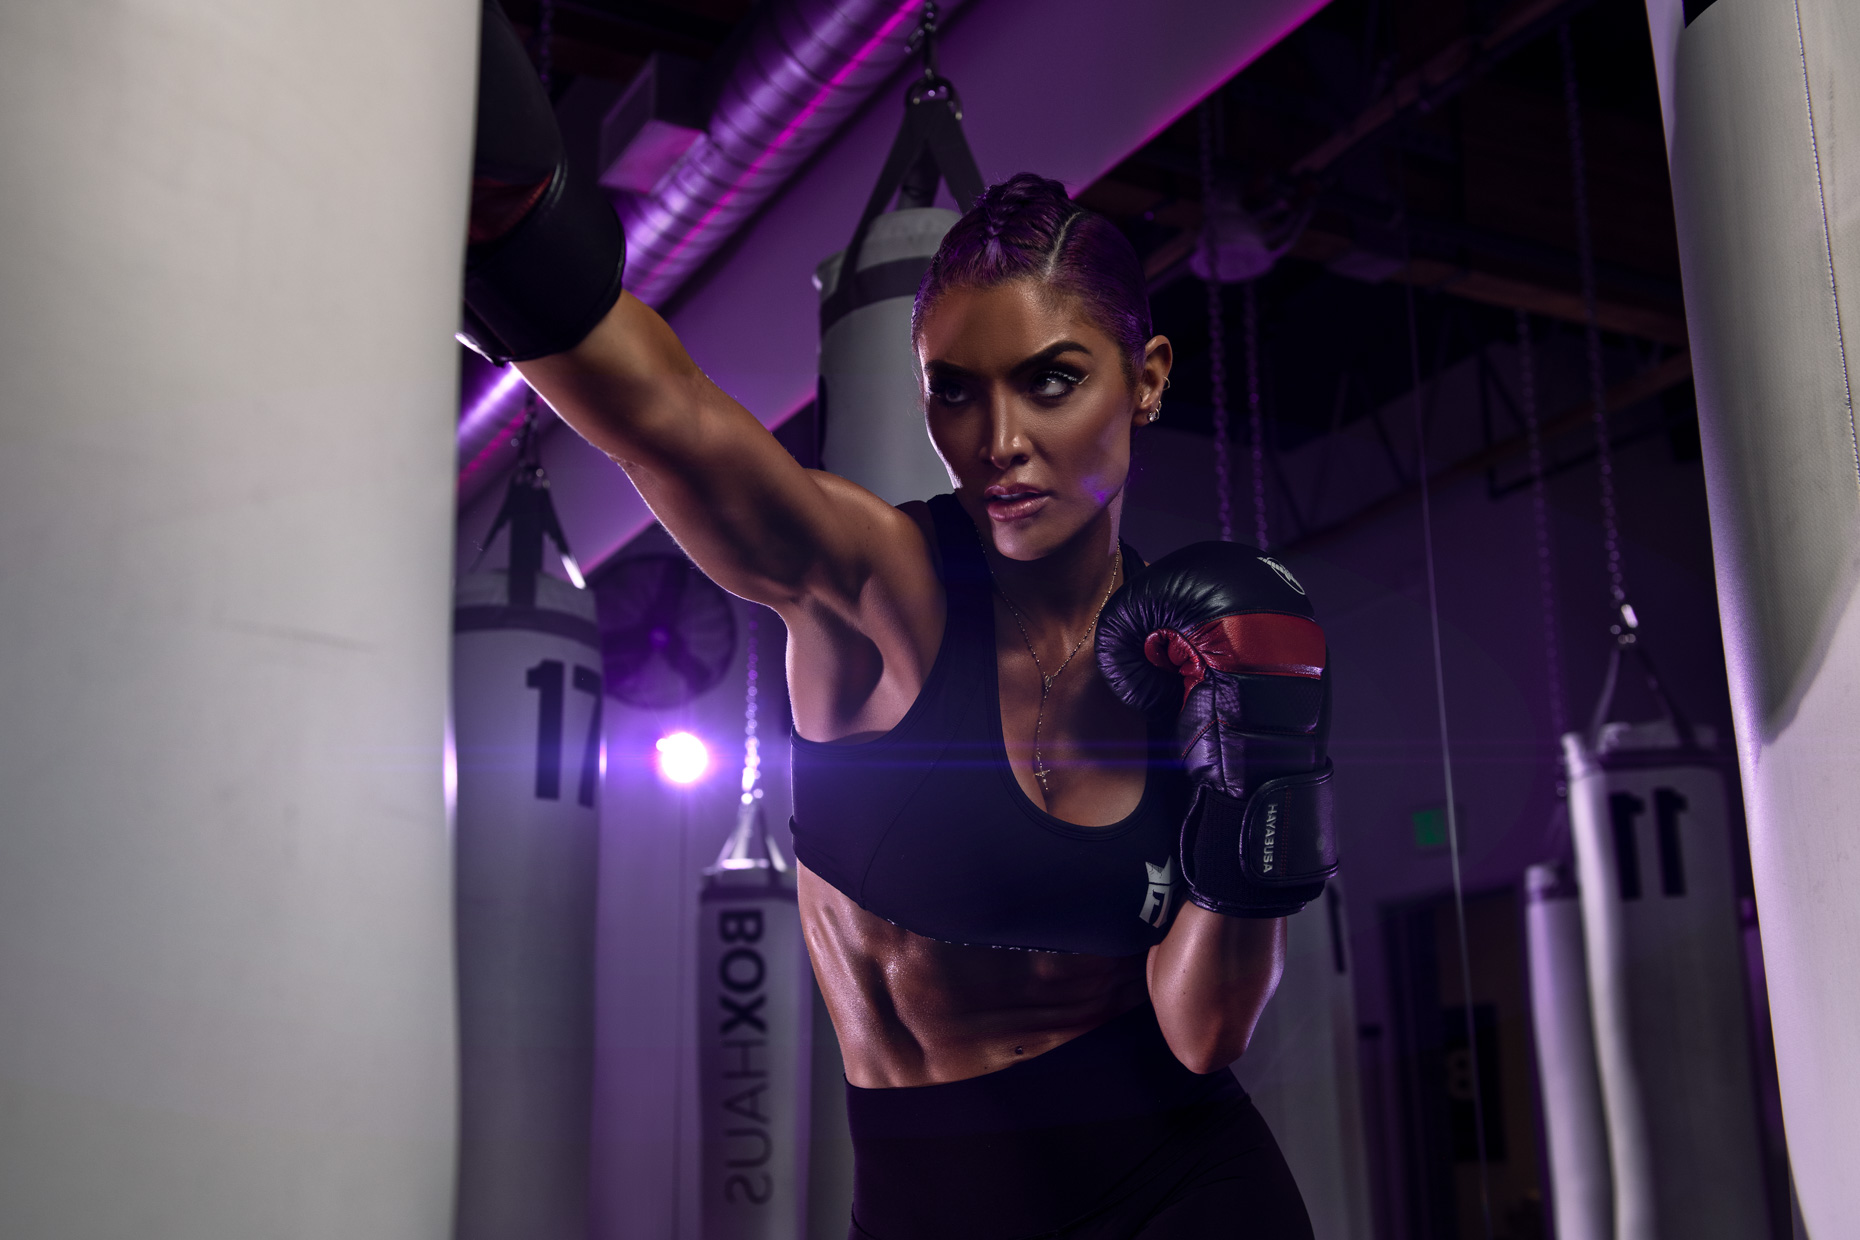 Natalie Eva Marie - WWE reality star boxing photoshoot, California